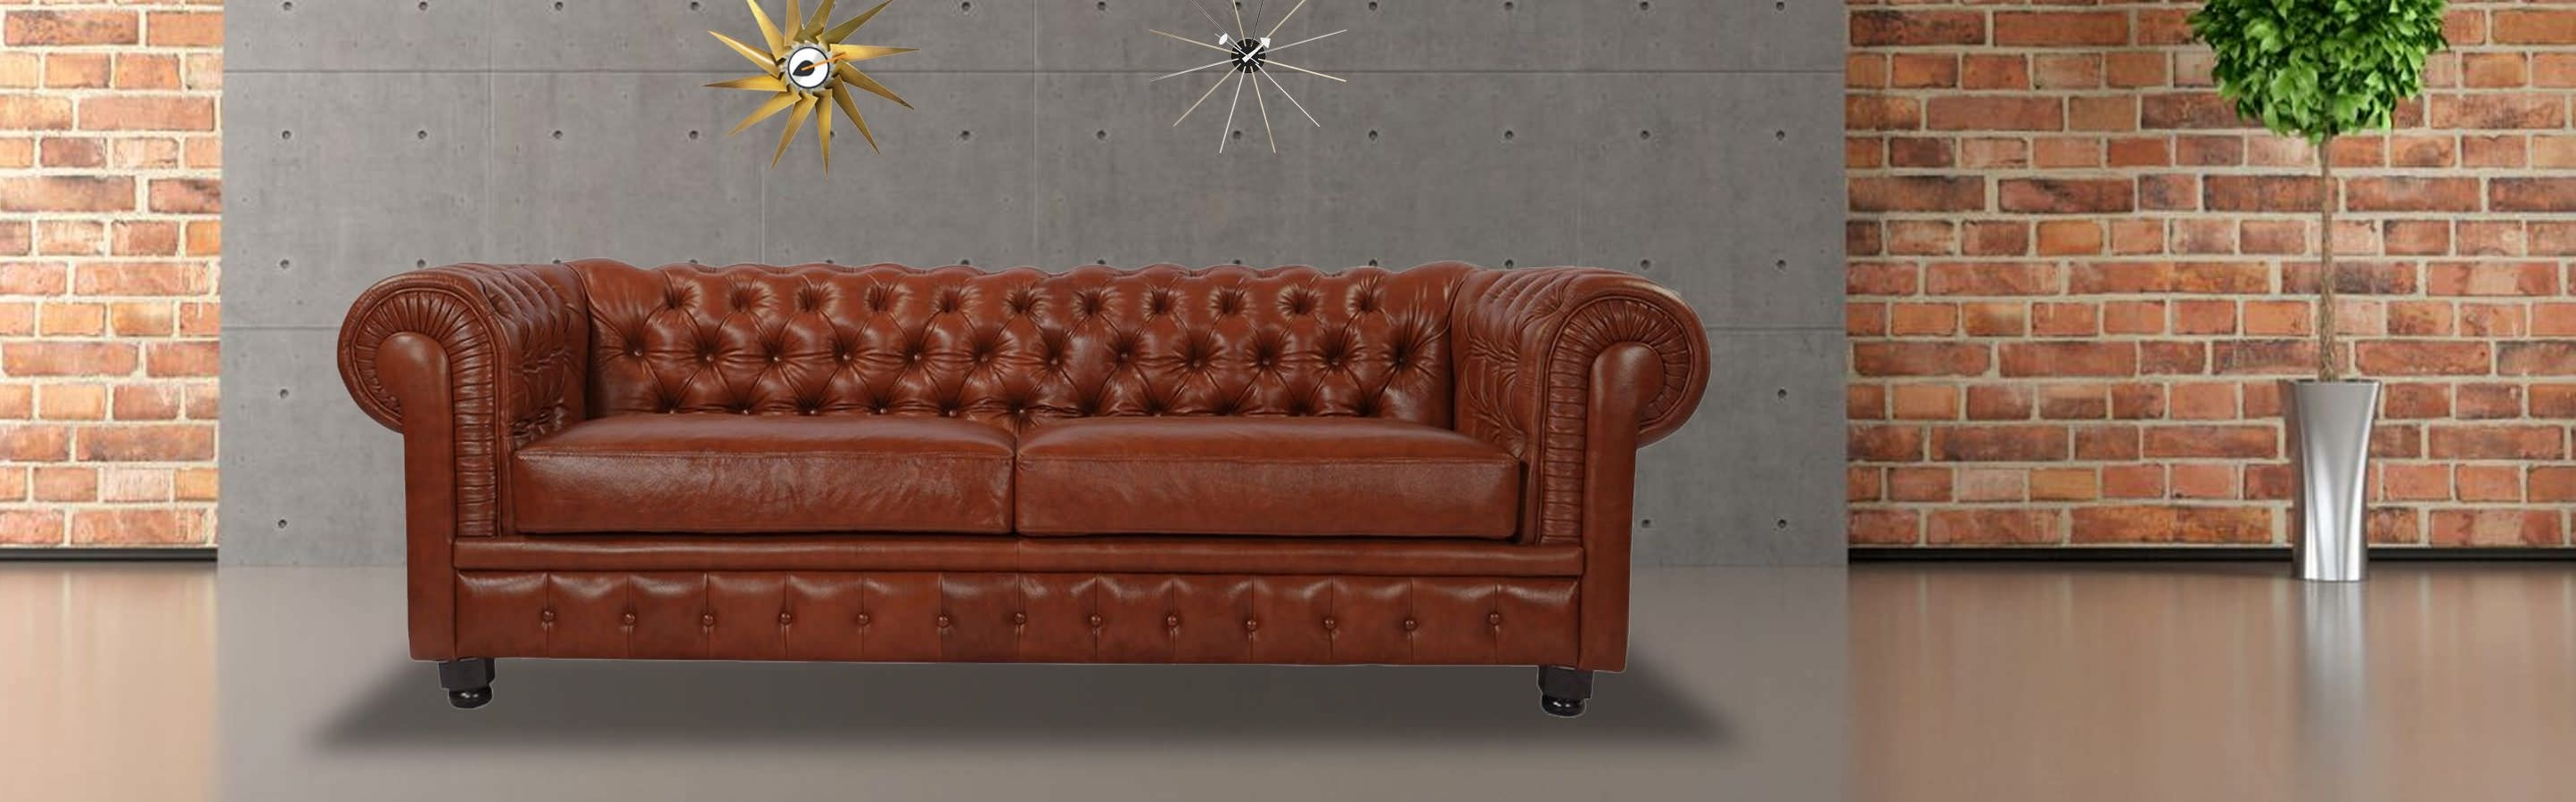 Famous Chesterfield Sofa, Chevron Grey Twill – Kardiel With Regard To Chesterfield Sofas And Chairs (View 10 of 20)